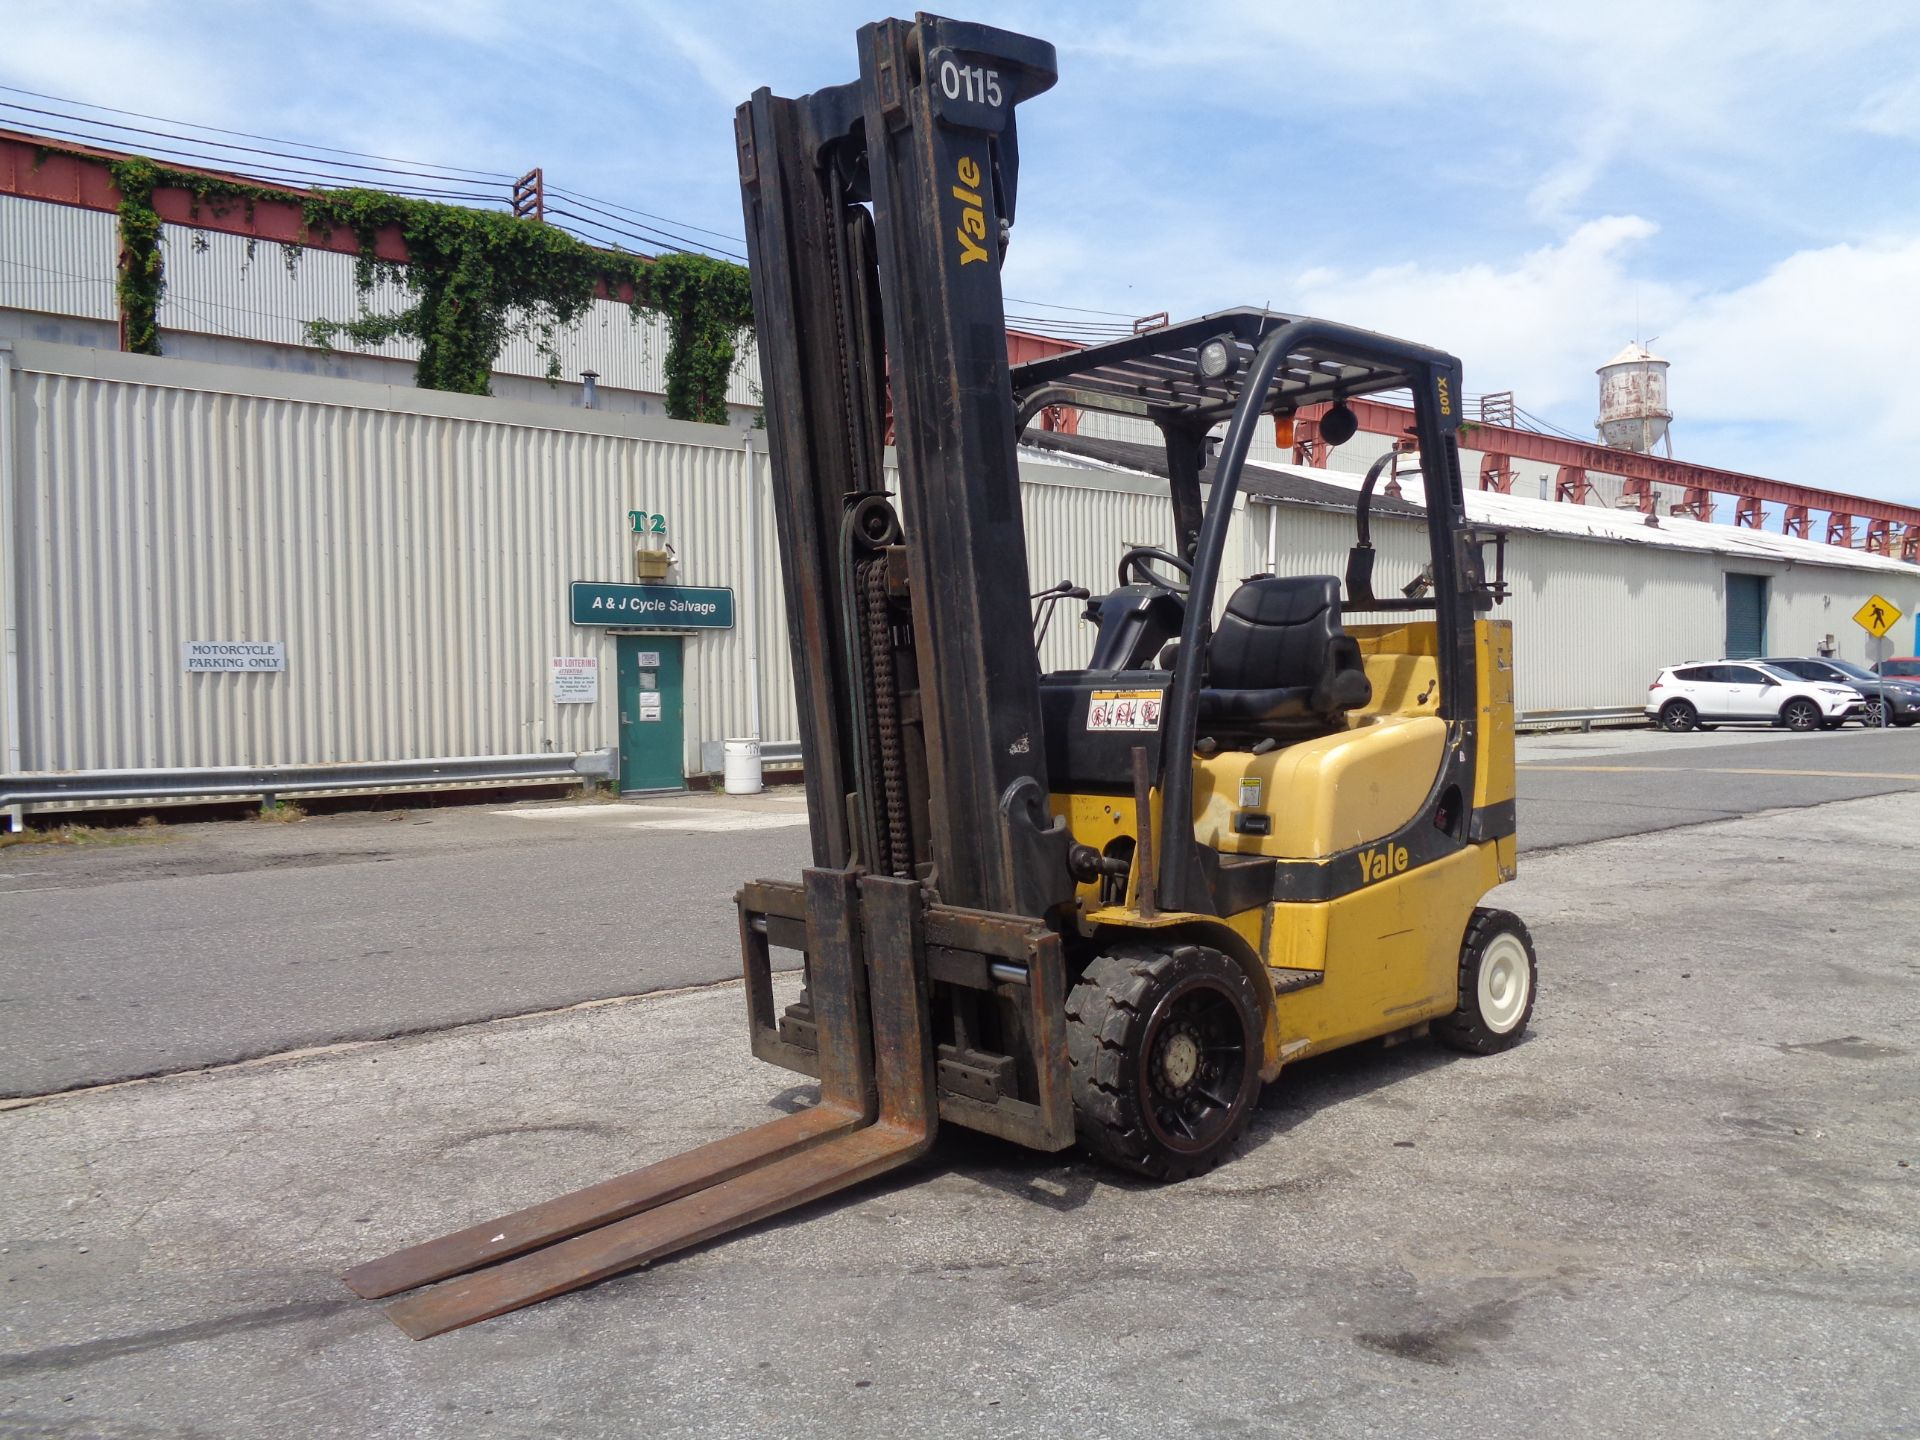 Yale GC080VXNGSE107.6 8,000lb Forklift - Image 8 of 18